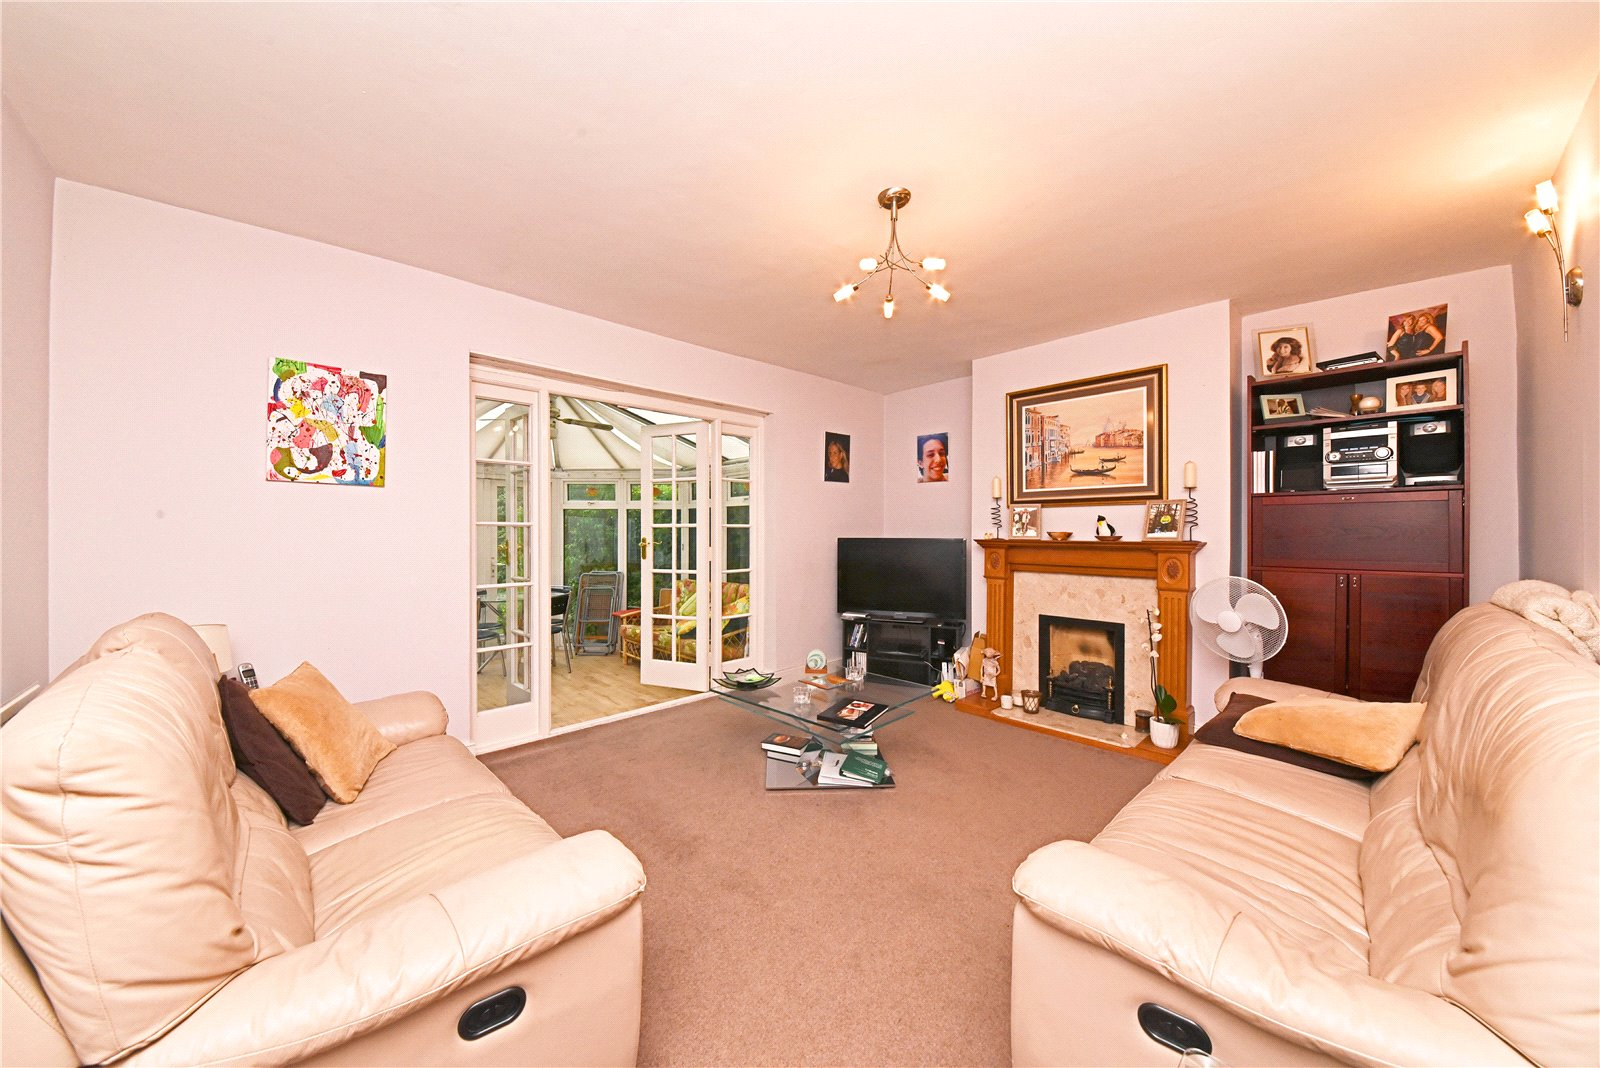 5 bed house for sale in Southgate, N14 4PX 3